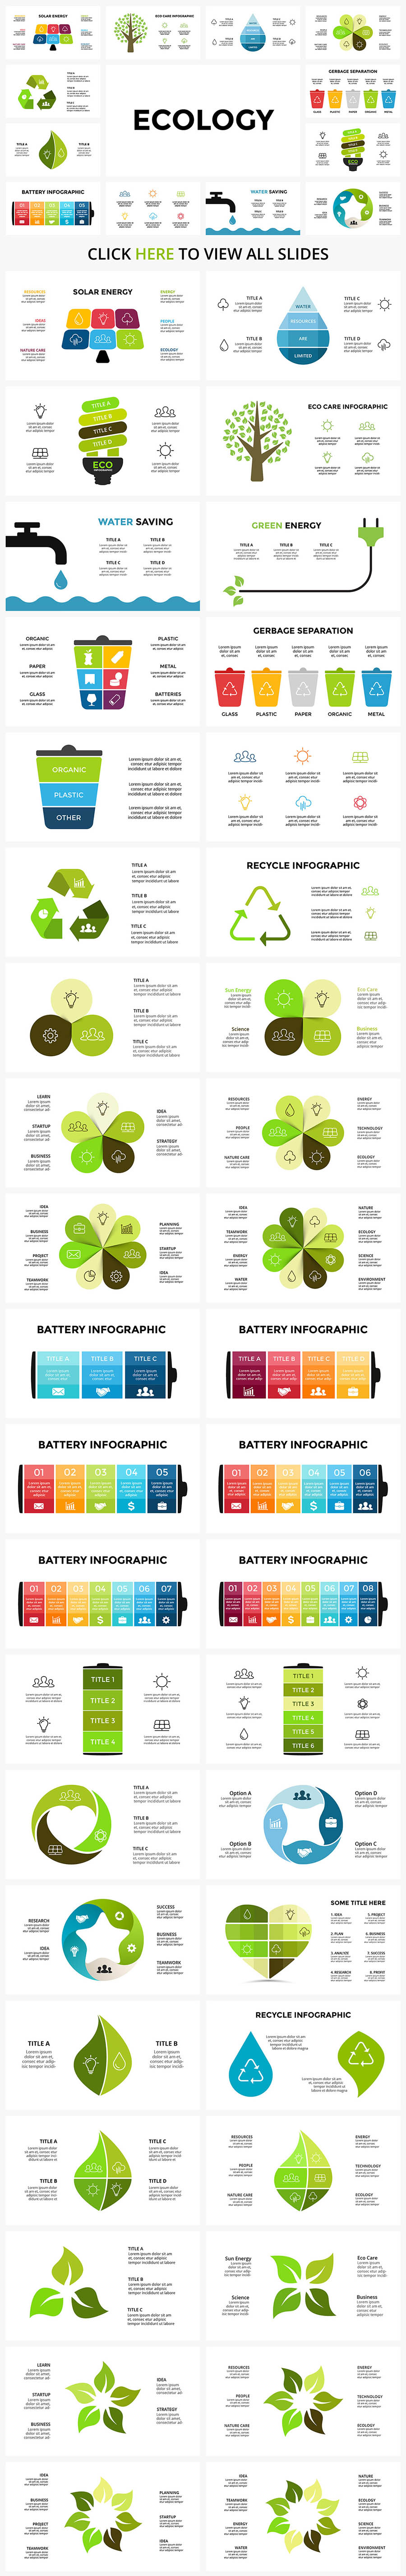 Cool Infographics in 2020. Best Infographics Bundle: 1500 items - $29 - 04 ECOLOGY